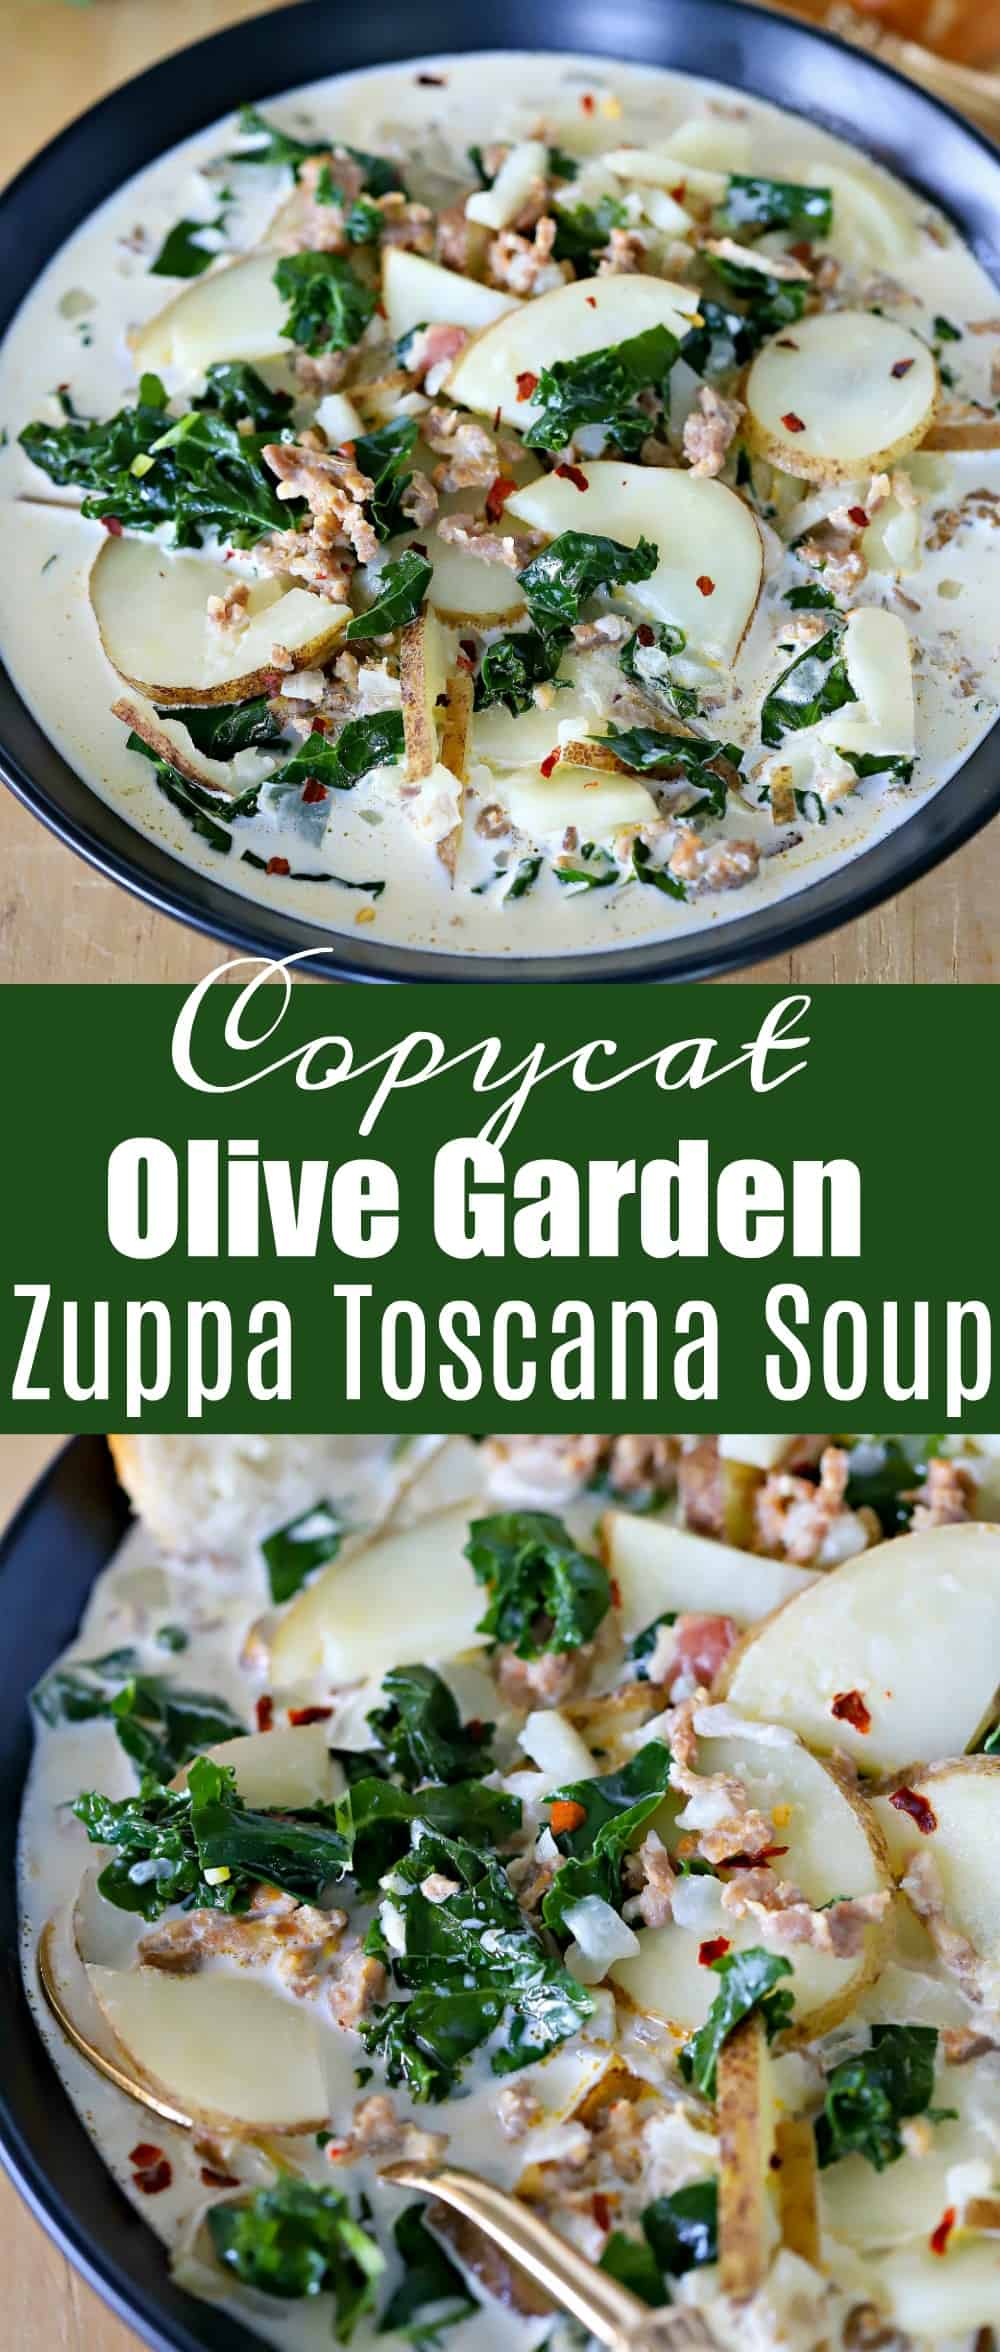 The yummiest Olive Garden copycat recipe - Copycat Olive Garden Zuppa Toscana Soup! It's the classic we all grew up loving and now you can make it in the comfort of your own home! It's super easy to make and doesn't require many ingredients. My family loves it!